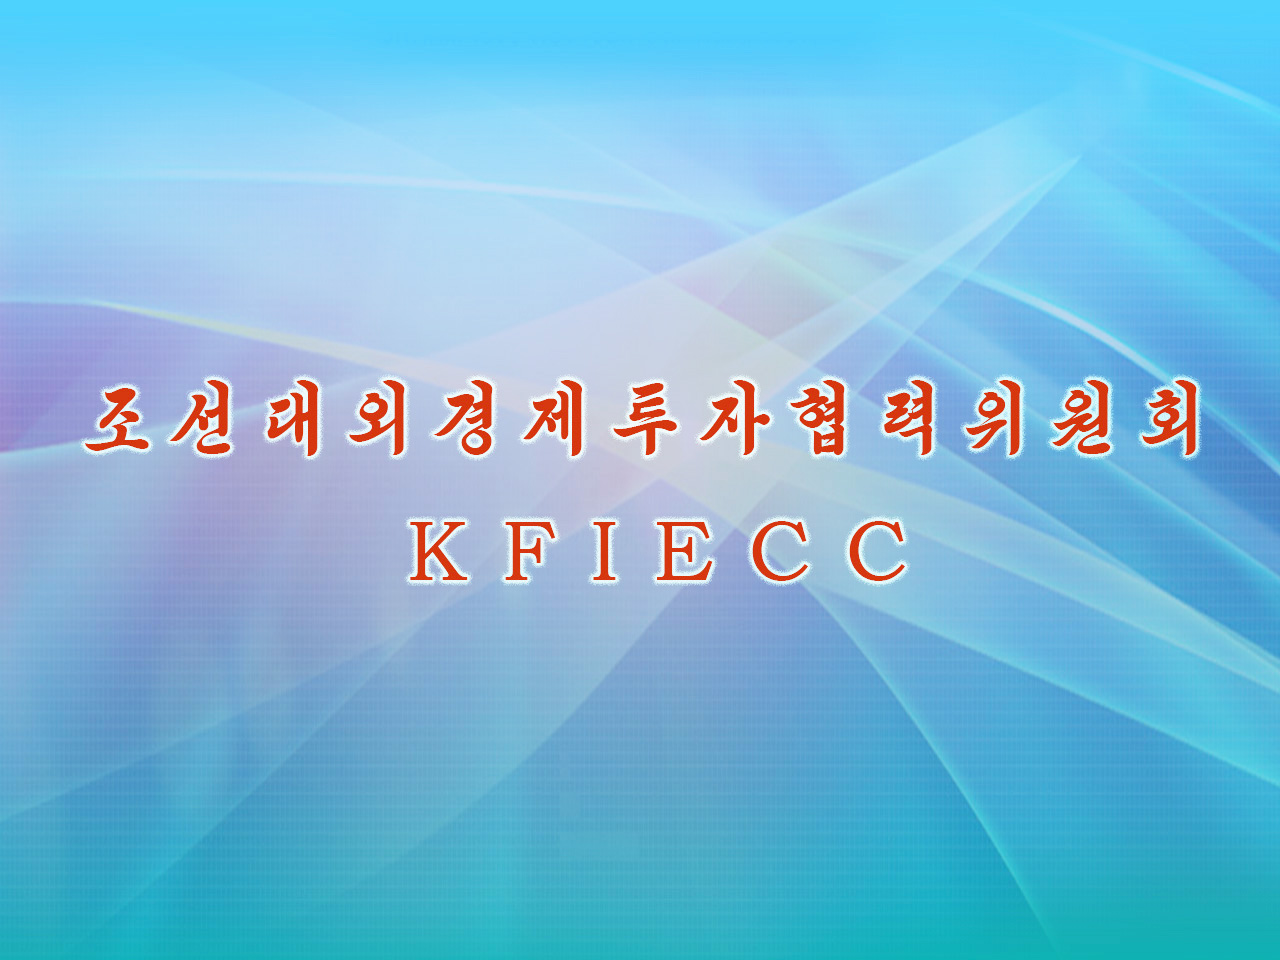 Korea Foreign Investment and Economic Cooperation Committee